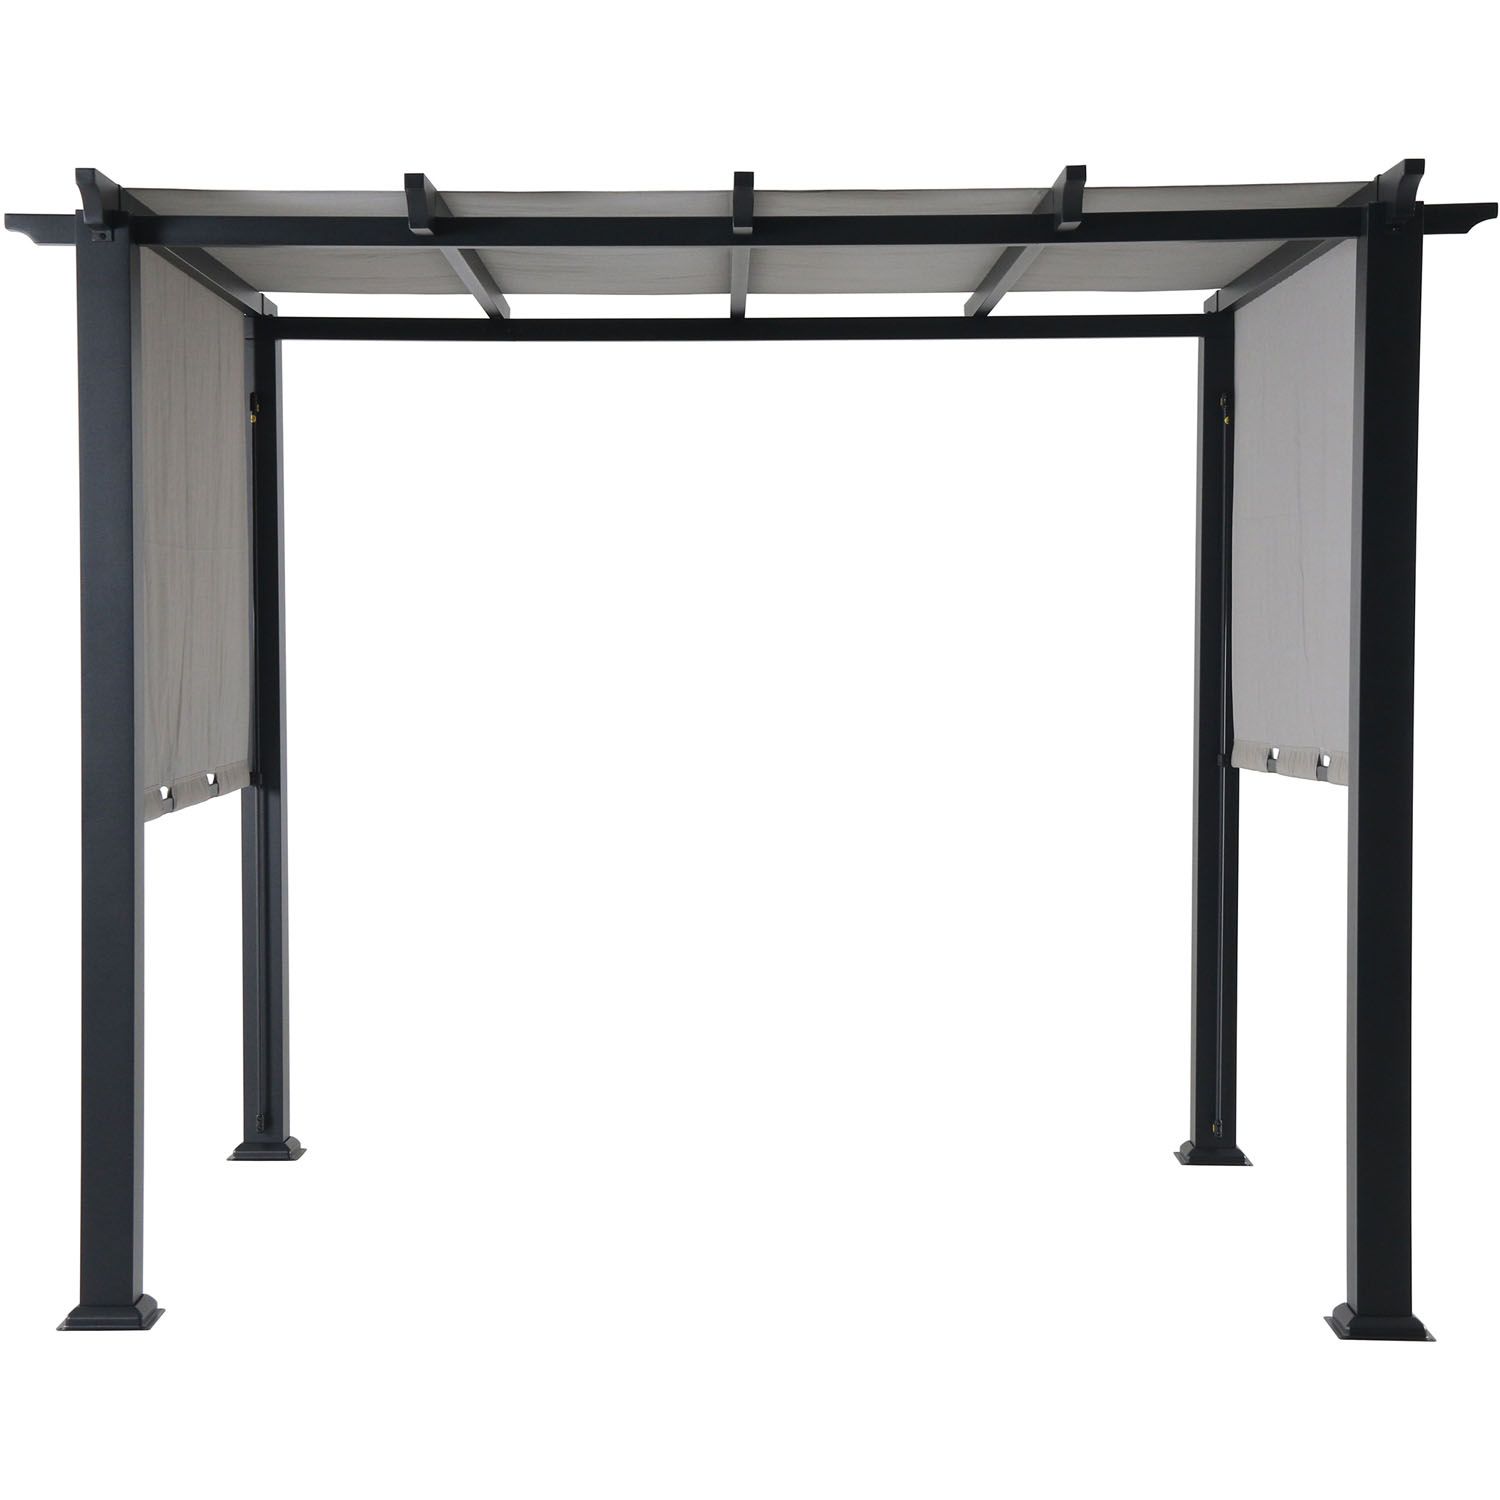 Hanover Hanover 8 x 10 Ft. Metal Pergola with an Adjustable Gray Canopy